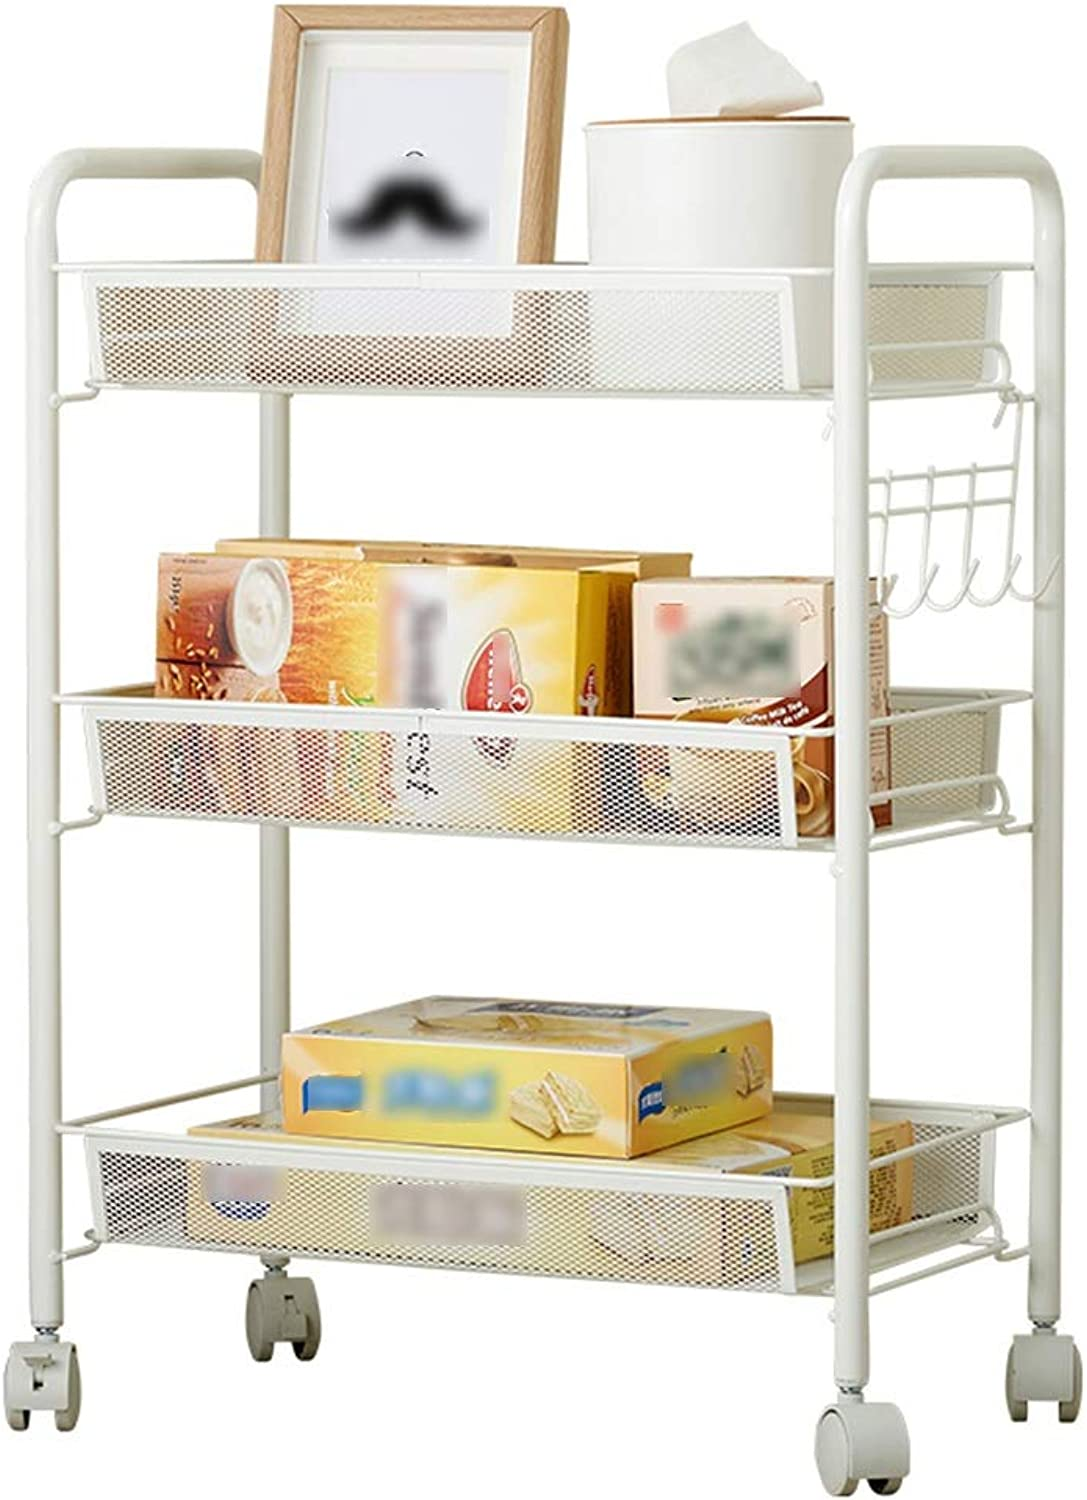 YANZHEN Kitchen Shelf Wire Shelving Floor-Standing Durable Can Move with Pulley Multifunction Storage Carbon Steel, Bearing Weight 60KG (color   White, Size   44x26x63cm)